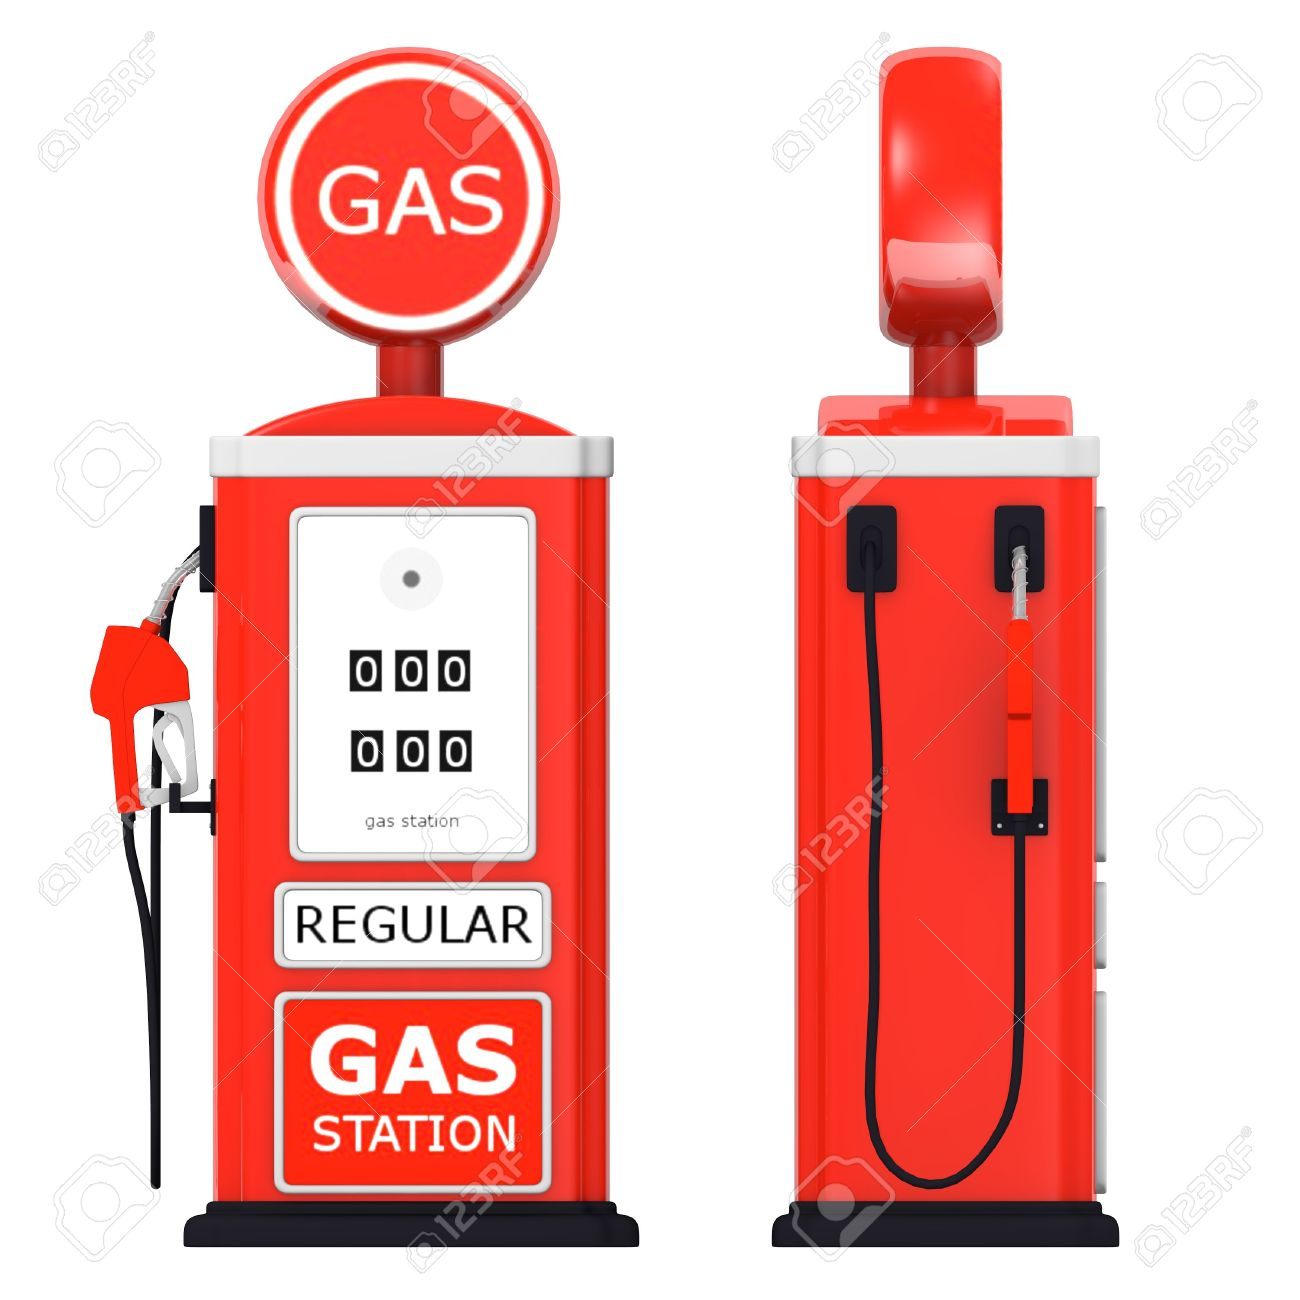 3d Render Of Gas Station Stock Photo, Picture And Royalty Free.